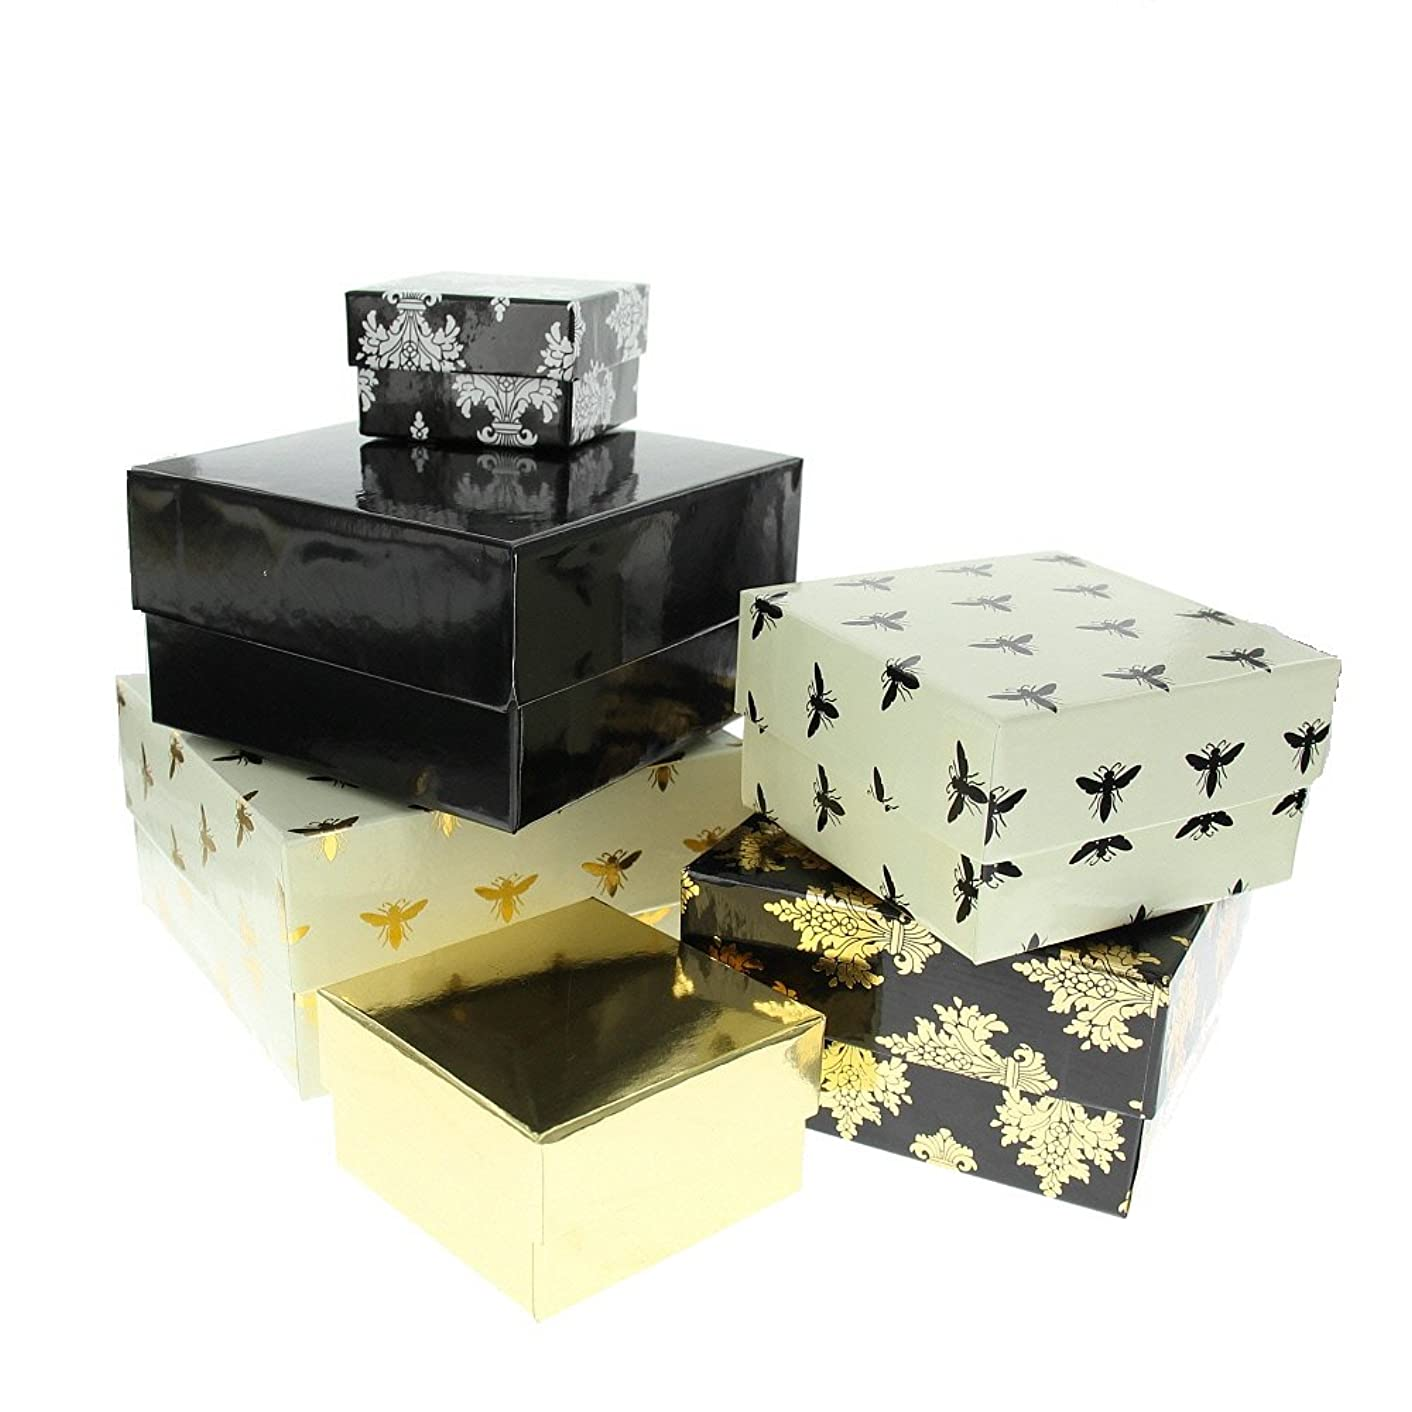 American Crafts DCWV Square Nested Box 6-Piece Set - Graduated Sizes, Ideal for Document/Gift Storage - Black, White, Gold